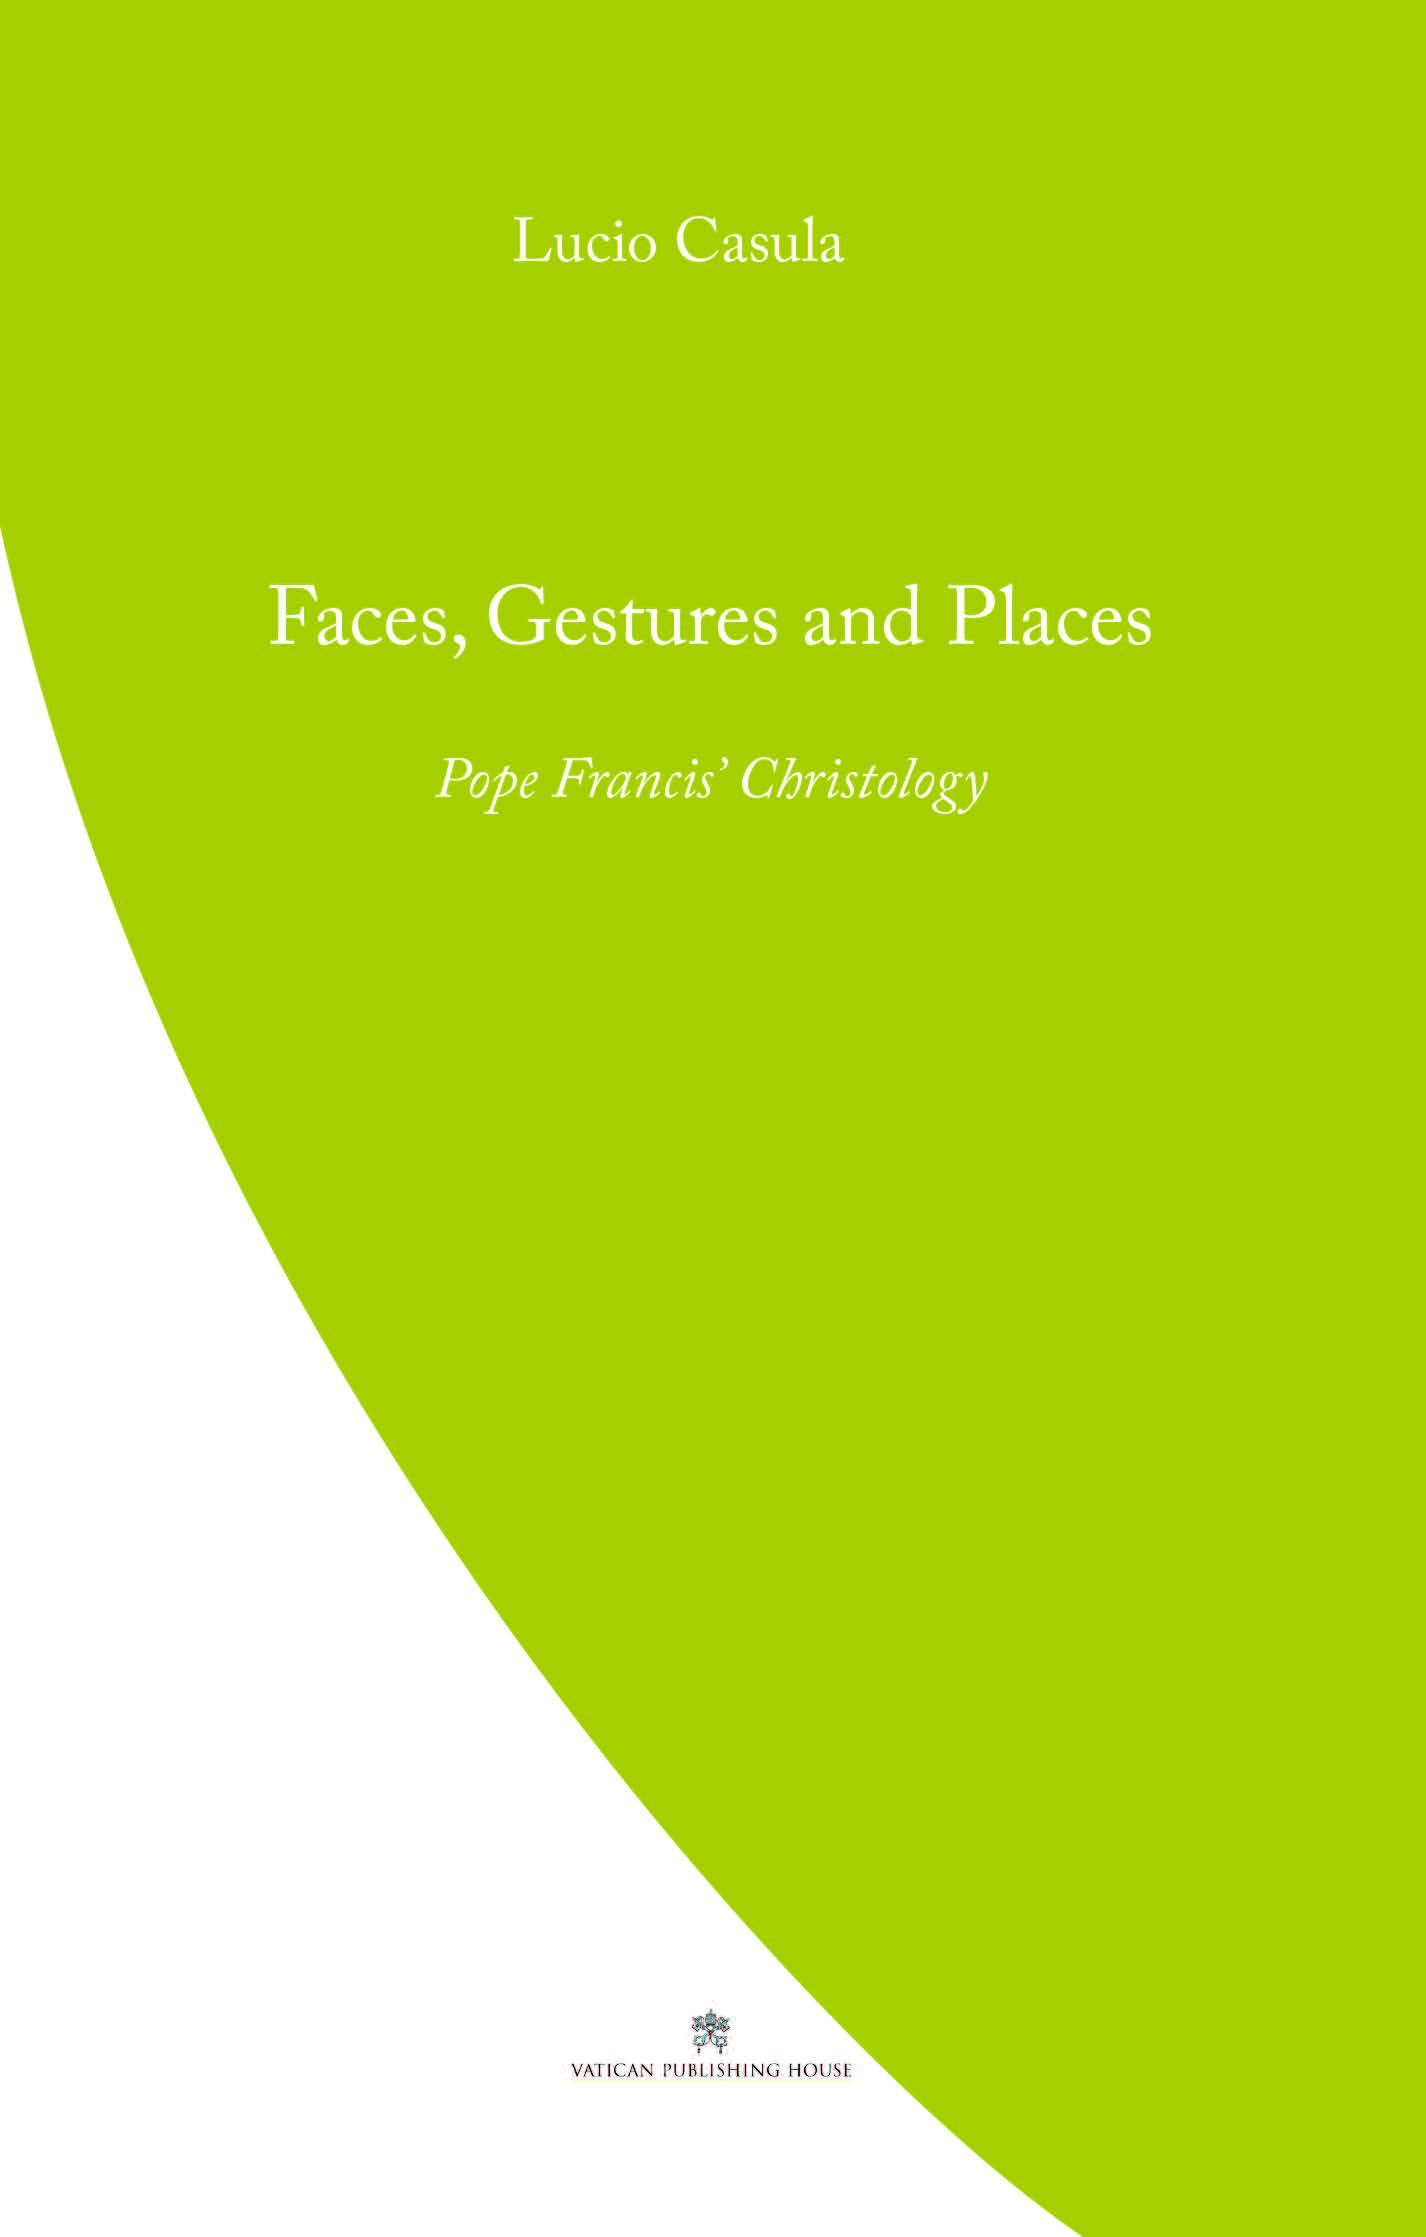 Faces, Gestures and Places  Pope Francis' Christology / Lucio Casula